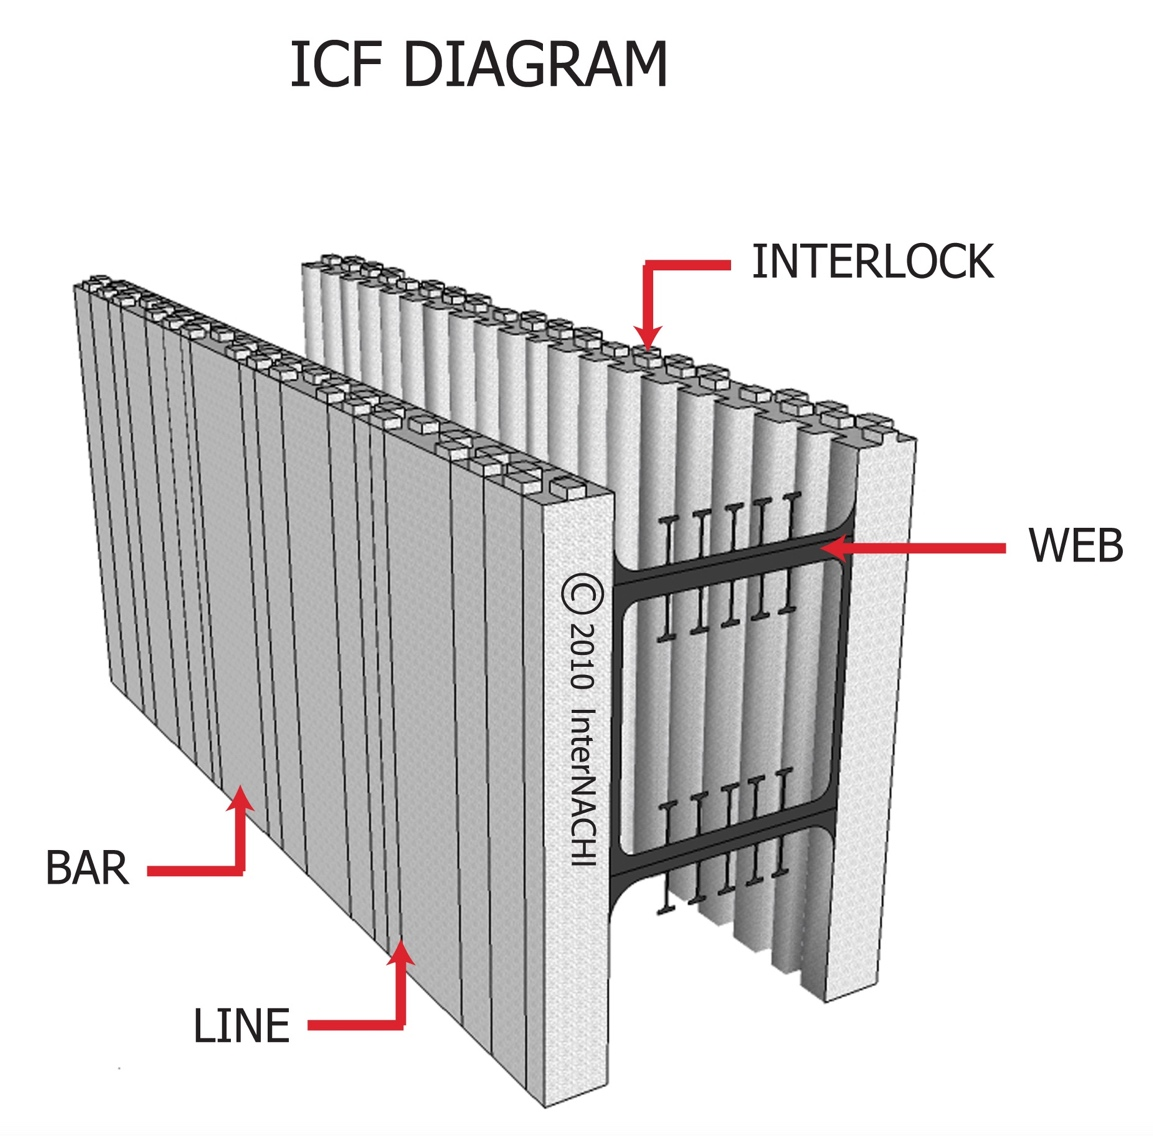 Structural design basics of residential construction for for Icf construction florida